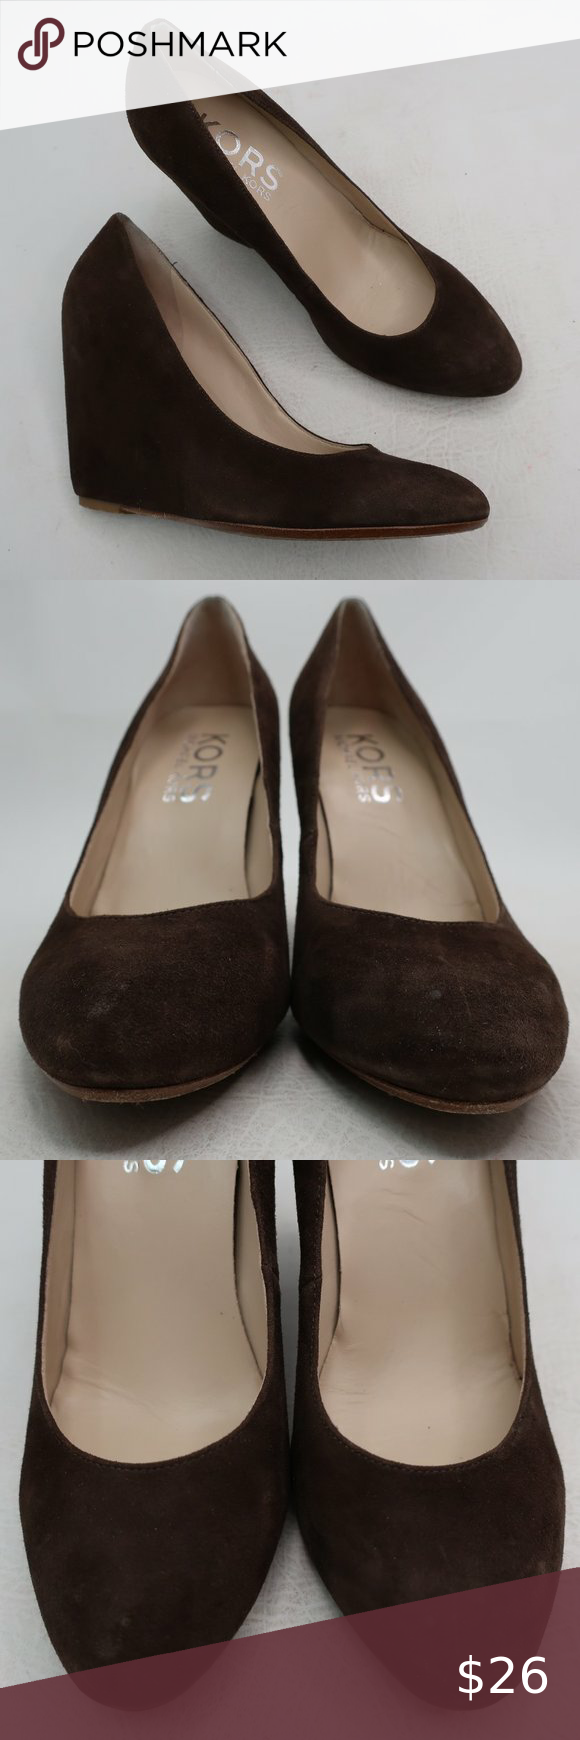 Michael Kors Brown Leather Wedges Size 8 Medium Thank you for stopping in! These are in excellent preowned condition with minor wear! Please see all pictures as they are the best descriptors.  • Brand: Michael Kors • Style: Wedges  • Color: Brown • Material: Leather • Size: 8 M  • Heel Height: 4